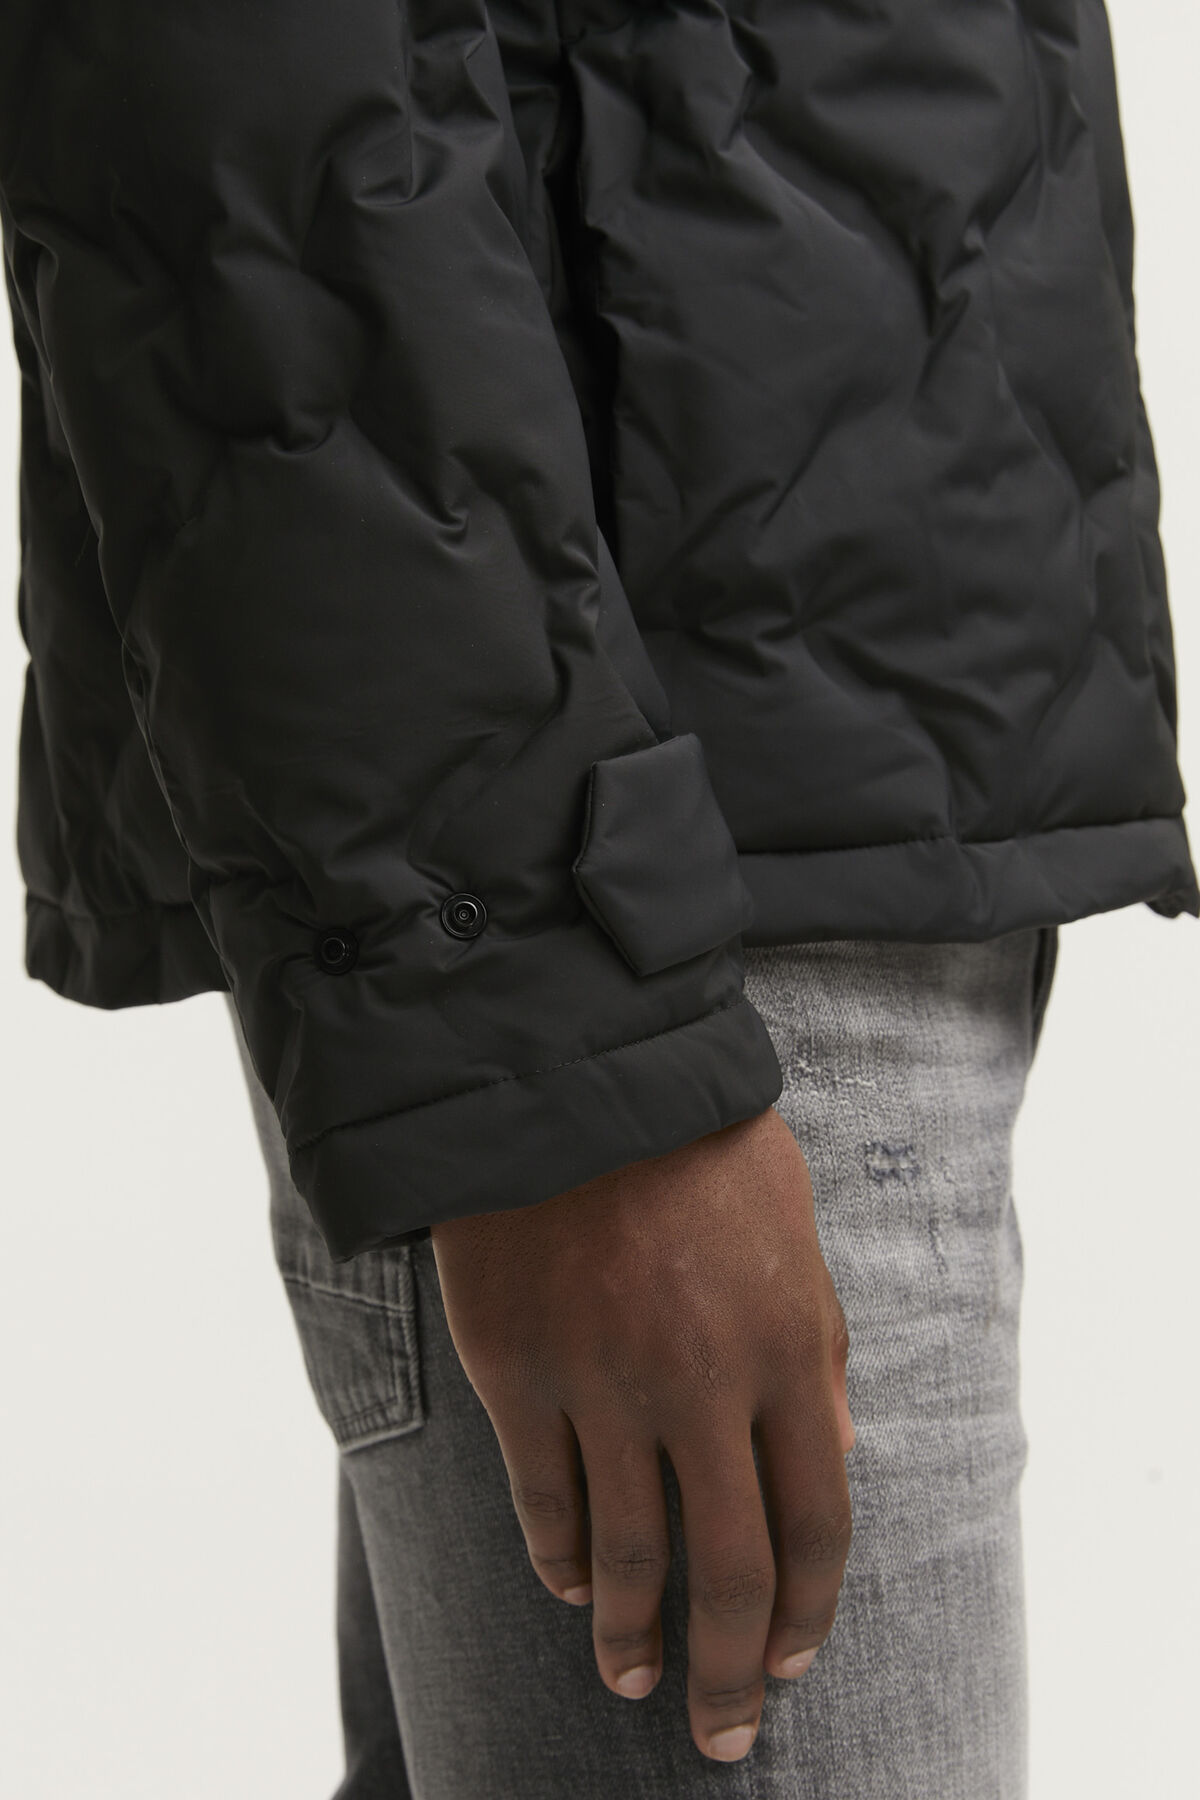 NM P.O. Jacket High-Performance Nylon - Boxy Fit